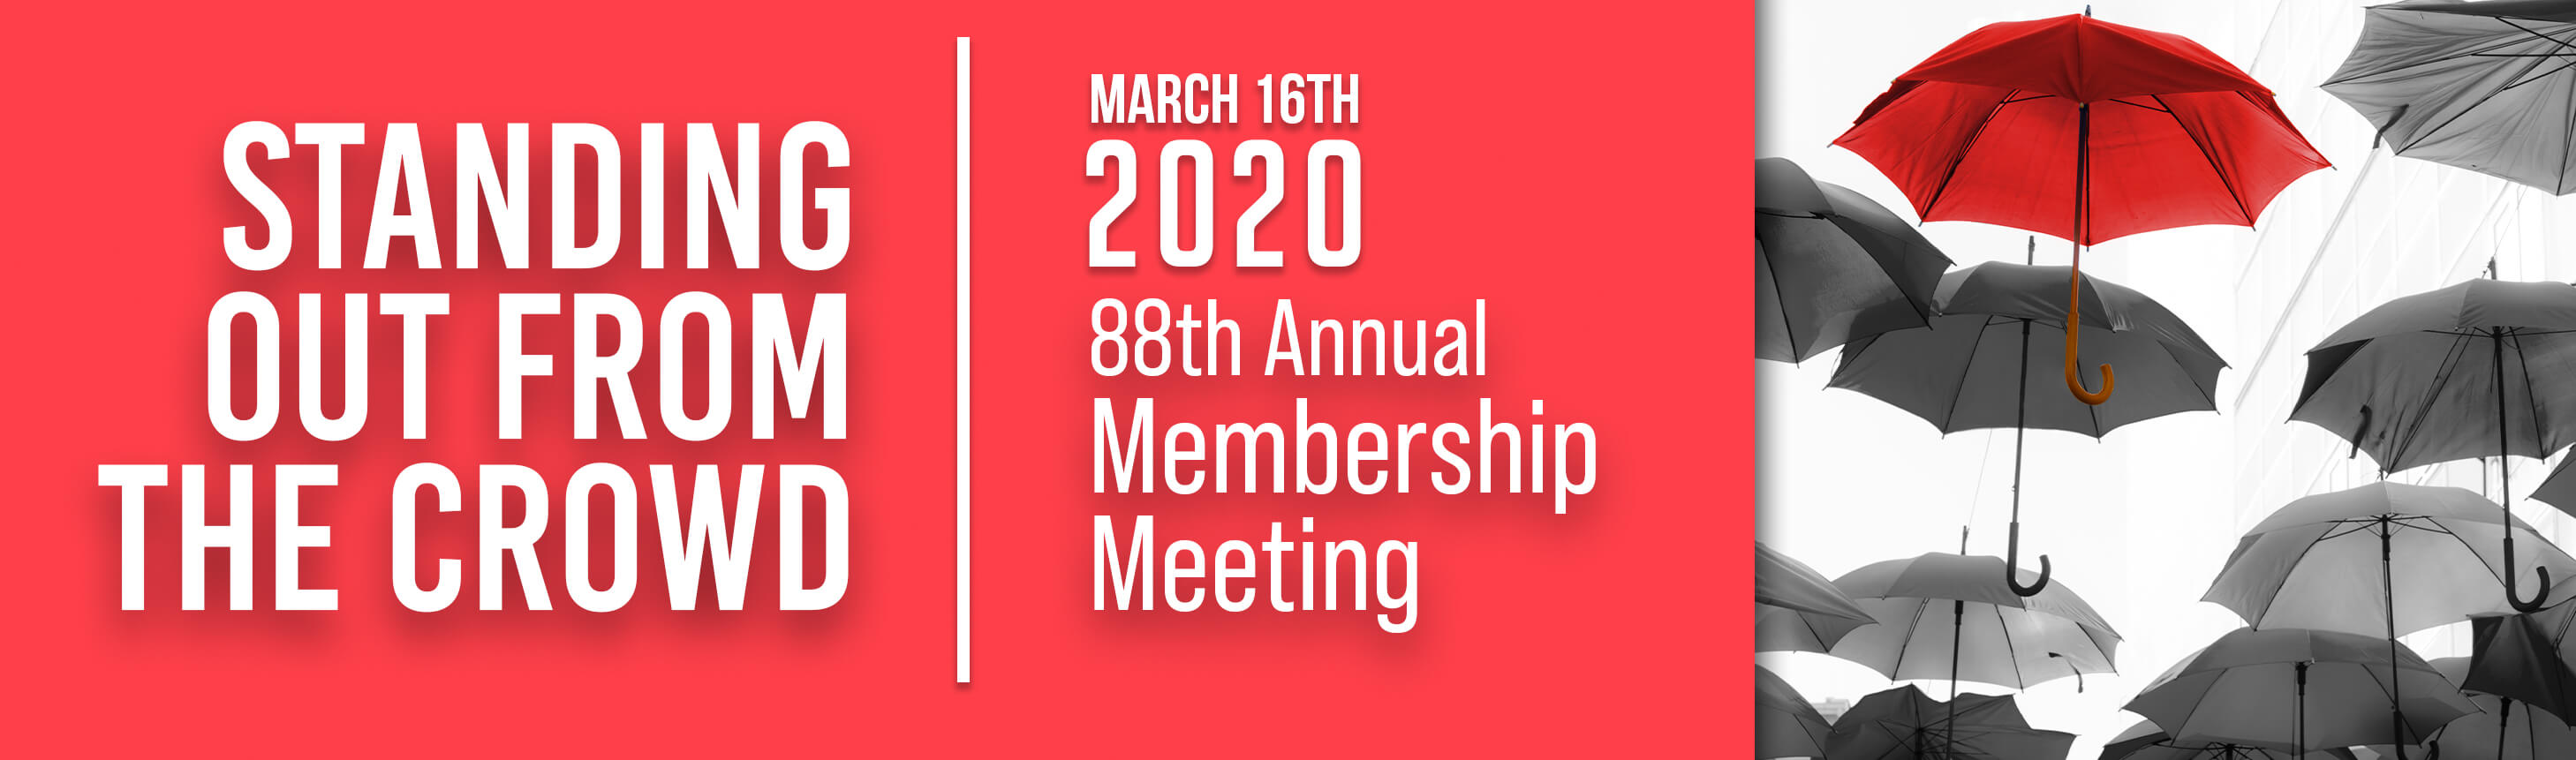 Standing Out From The Crowd March 16th 2020 88th Annual Membership Meeting